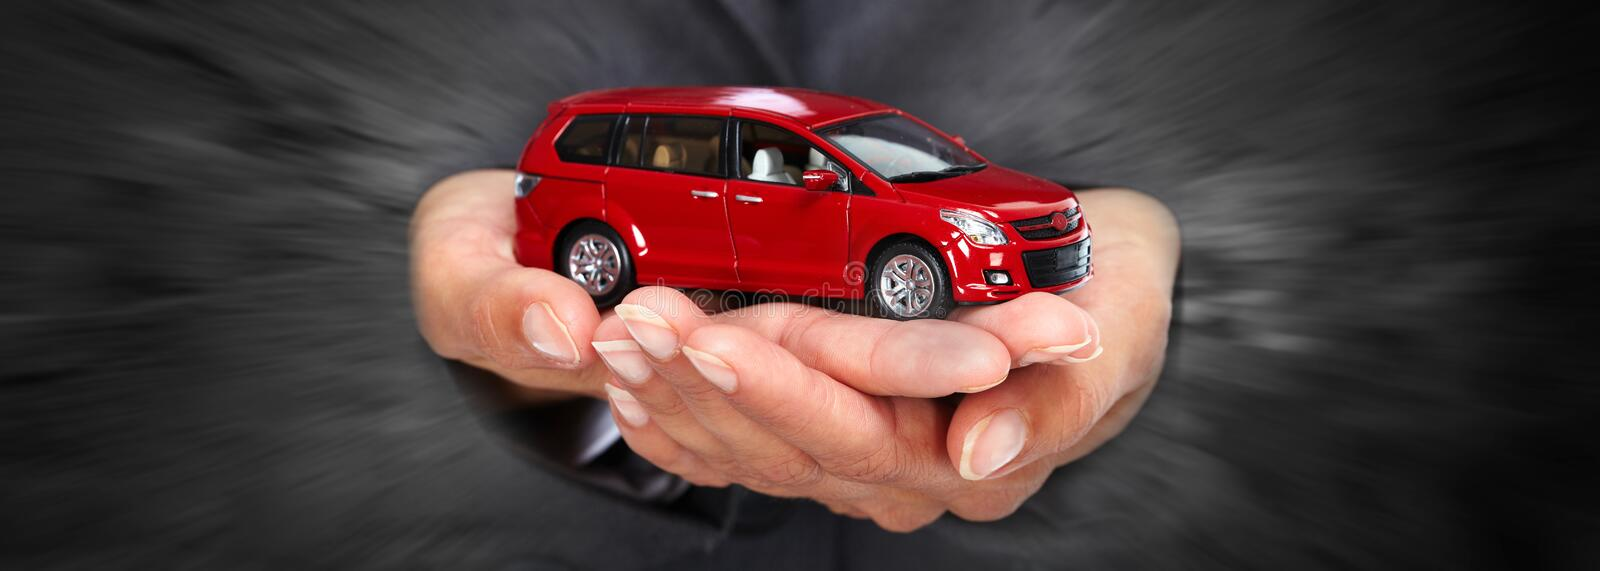 Buy a new car. Woman hands with a car gift. Auto dealership rental concept background royalty free stock photos